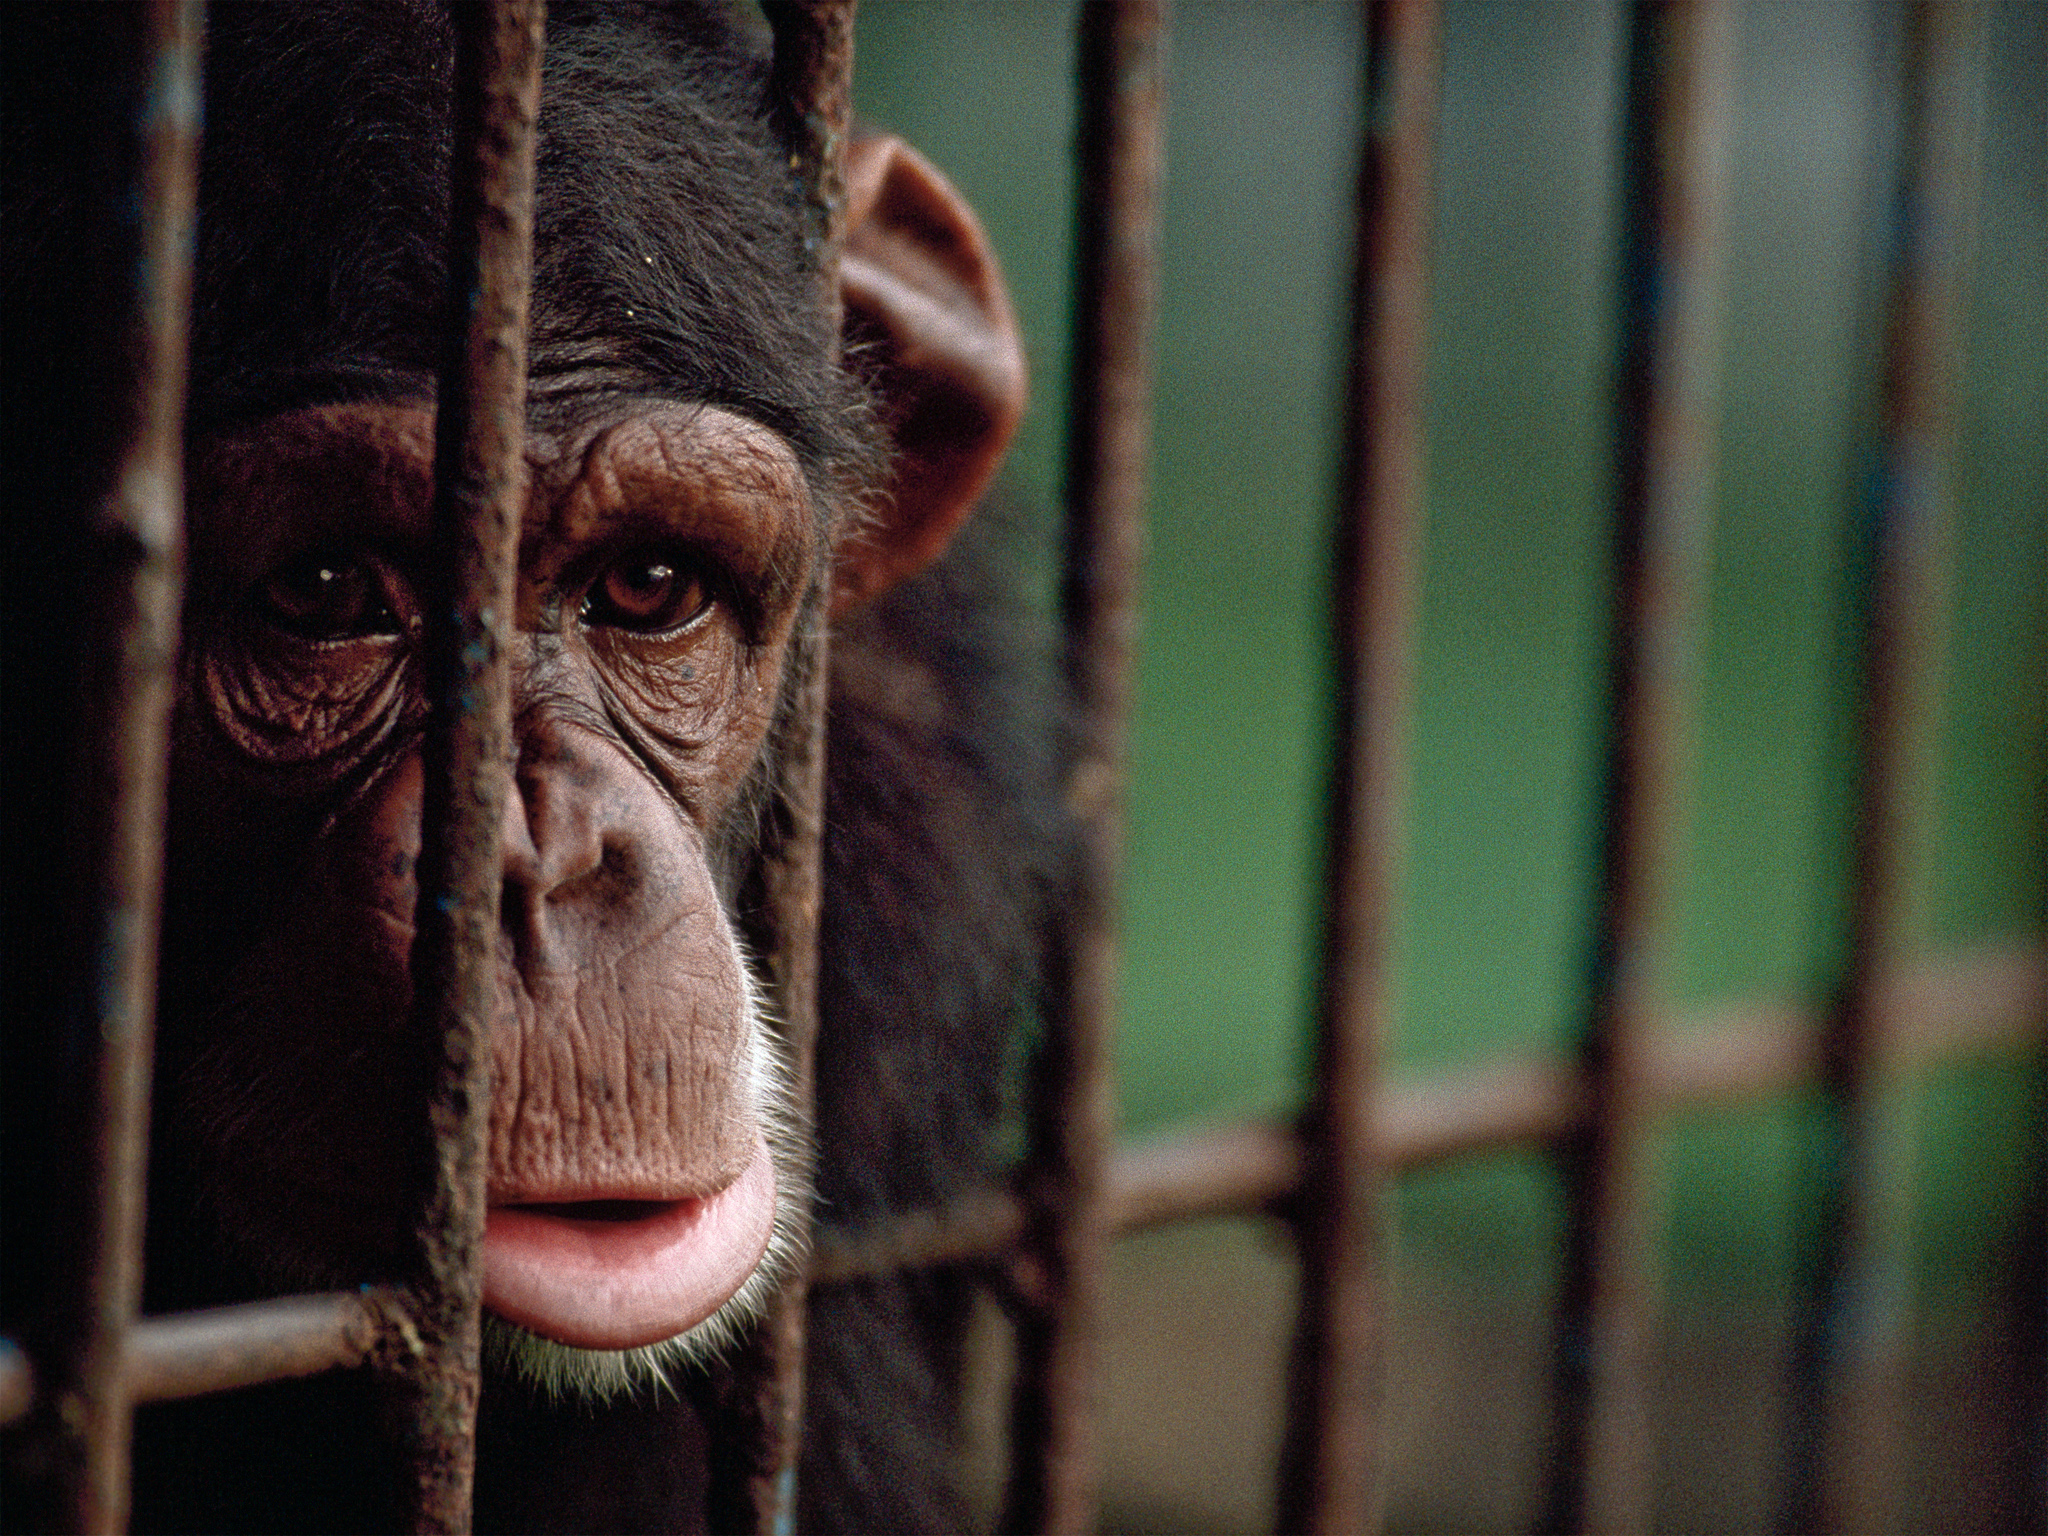 A chimpanzee sits in a cage.